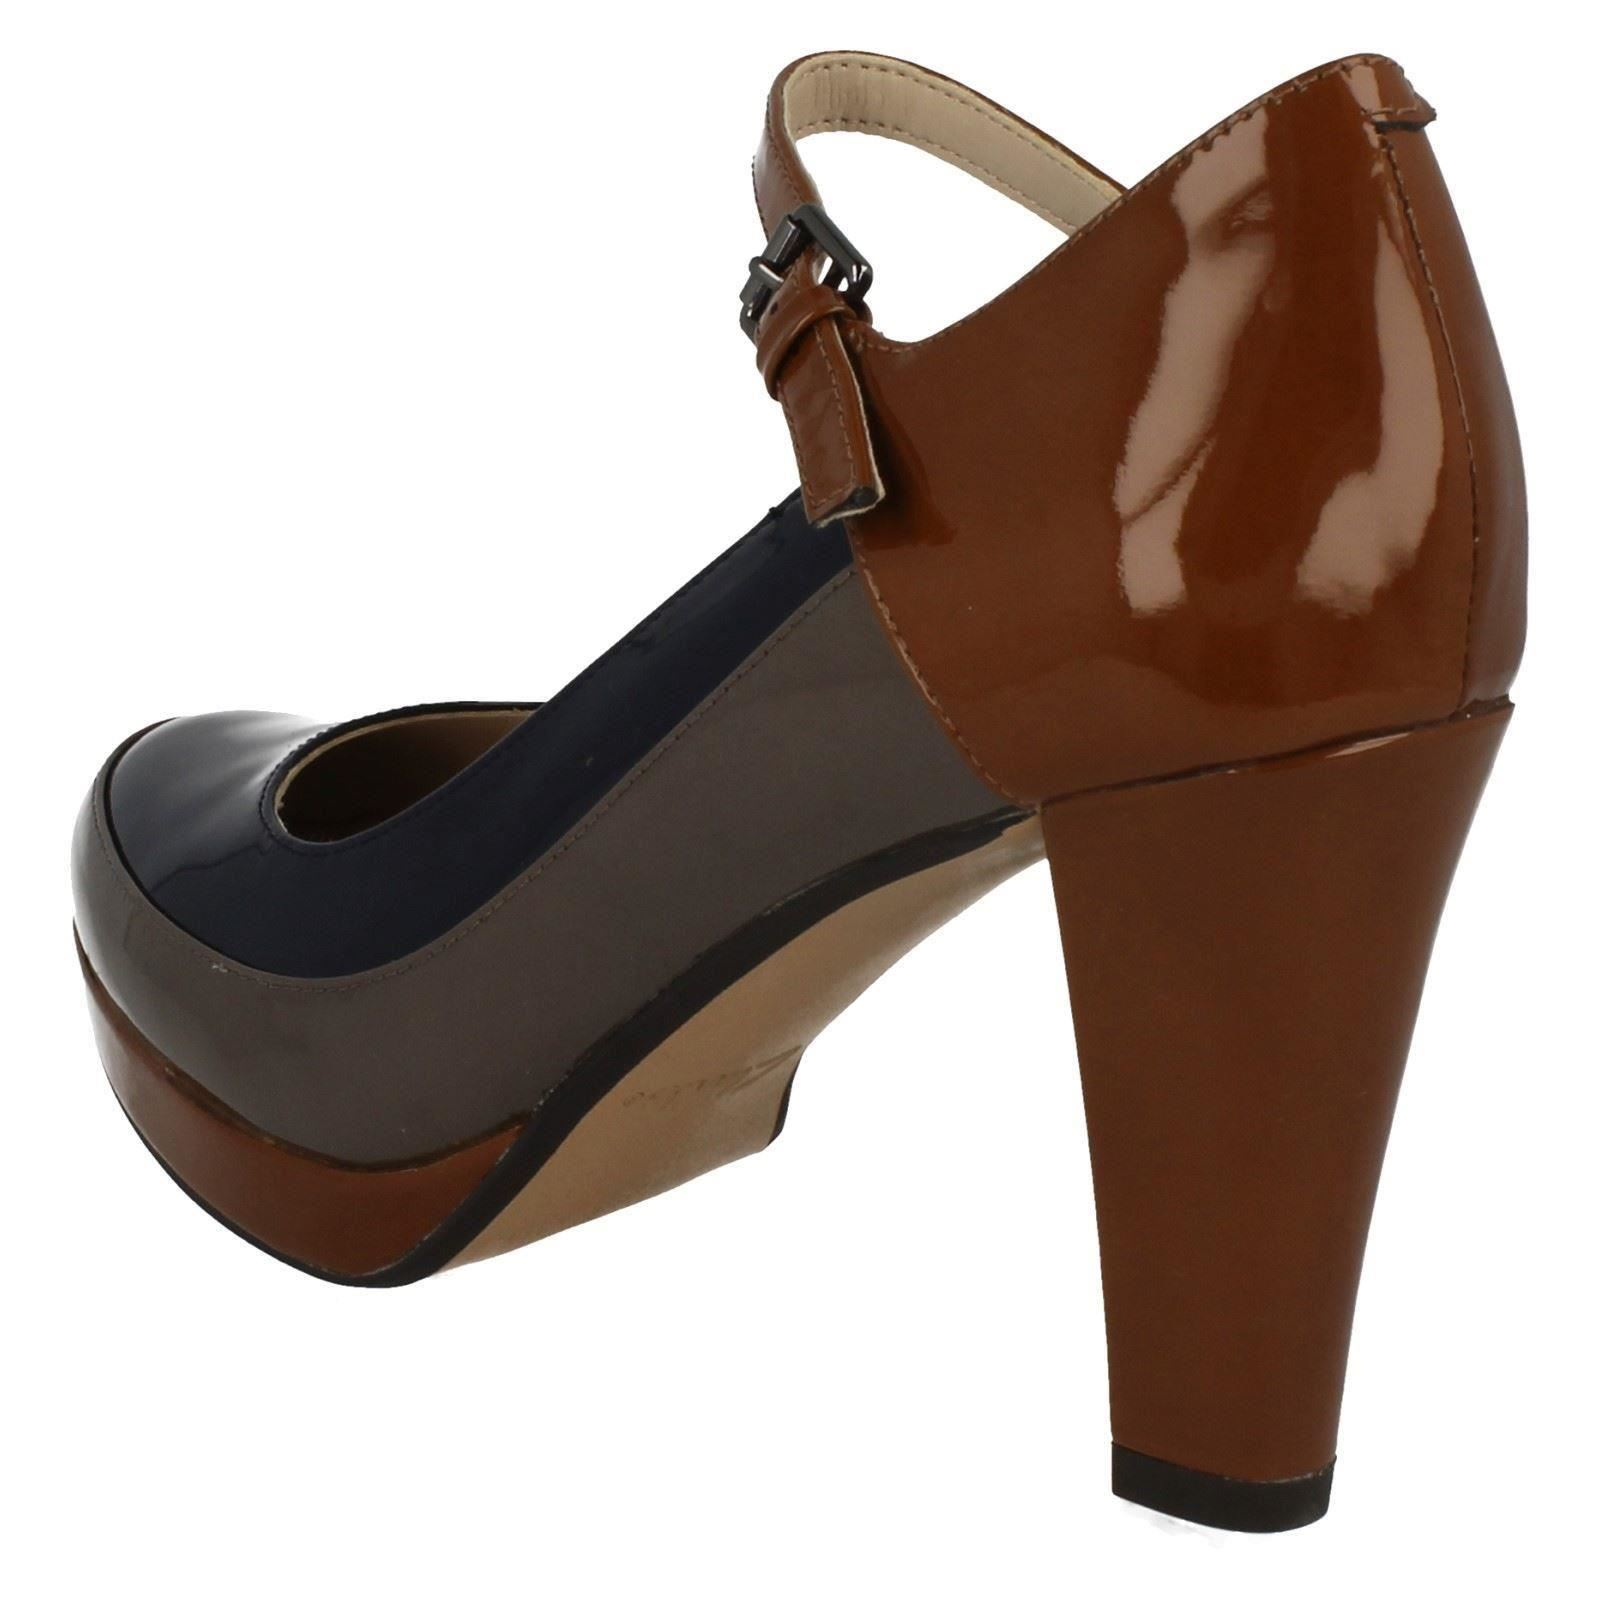 Kendra Ladies Shoes From Clarks